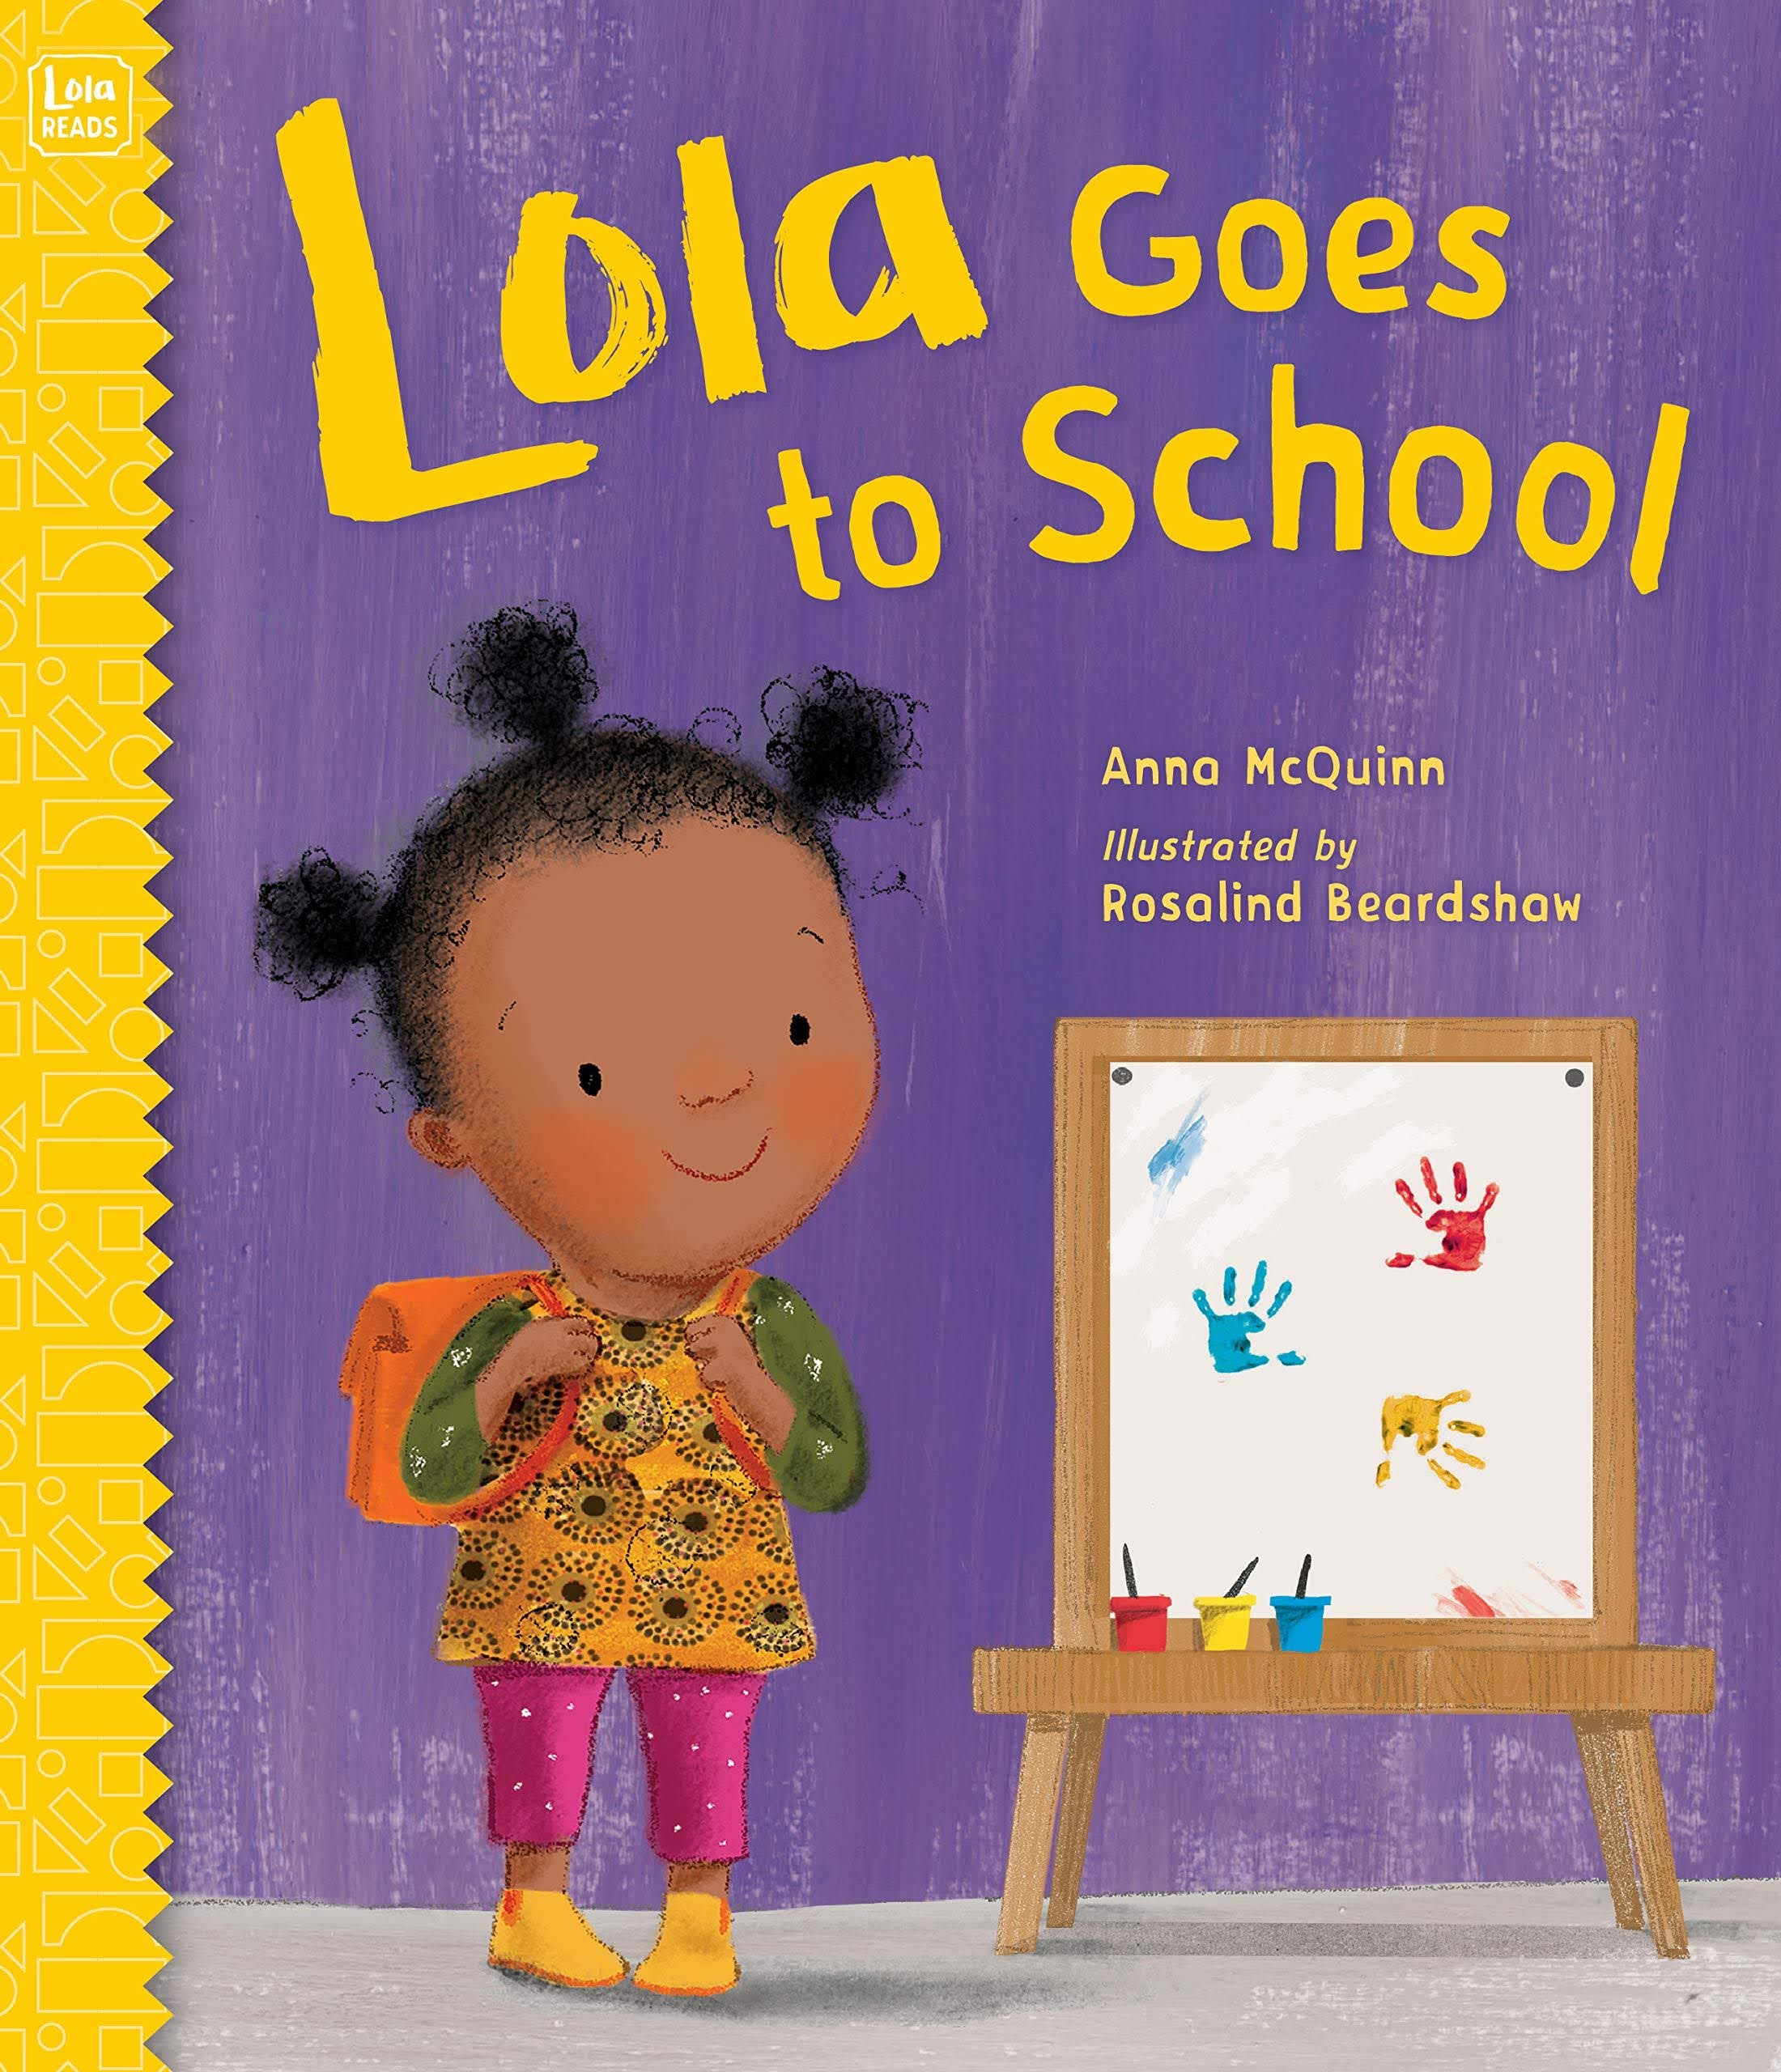 Lola Goes to School by Anna McQuinn and illustrated by Rosalind Beardshaw